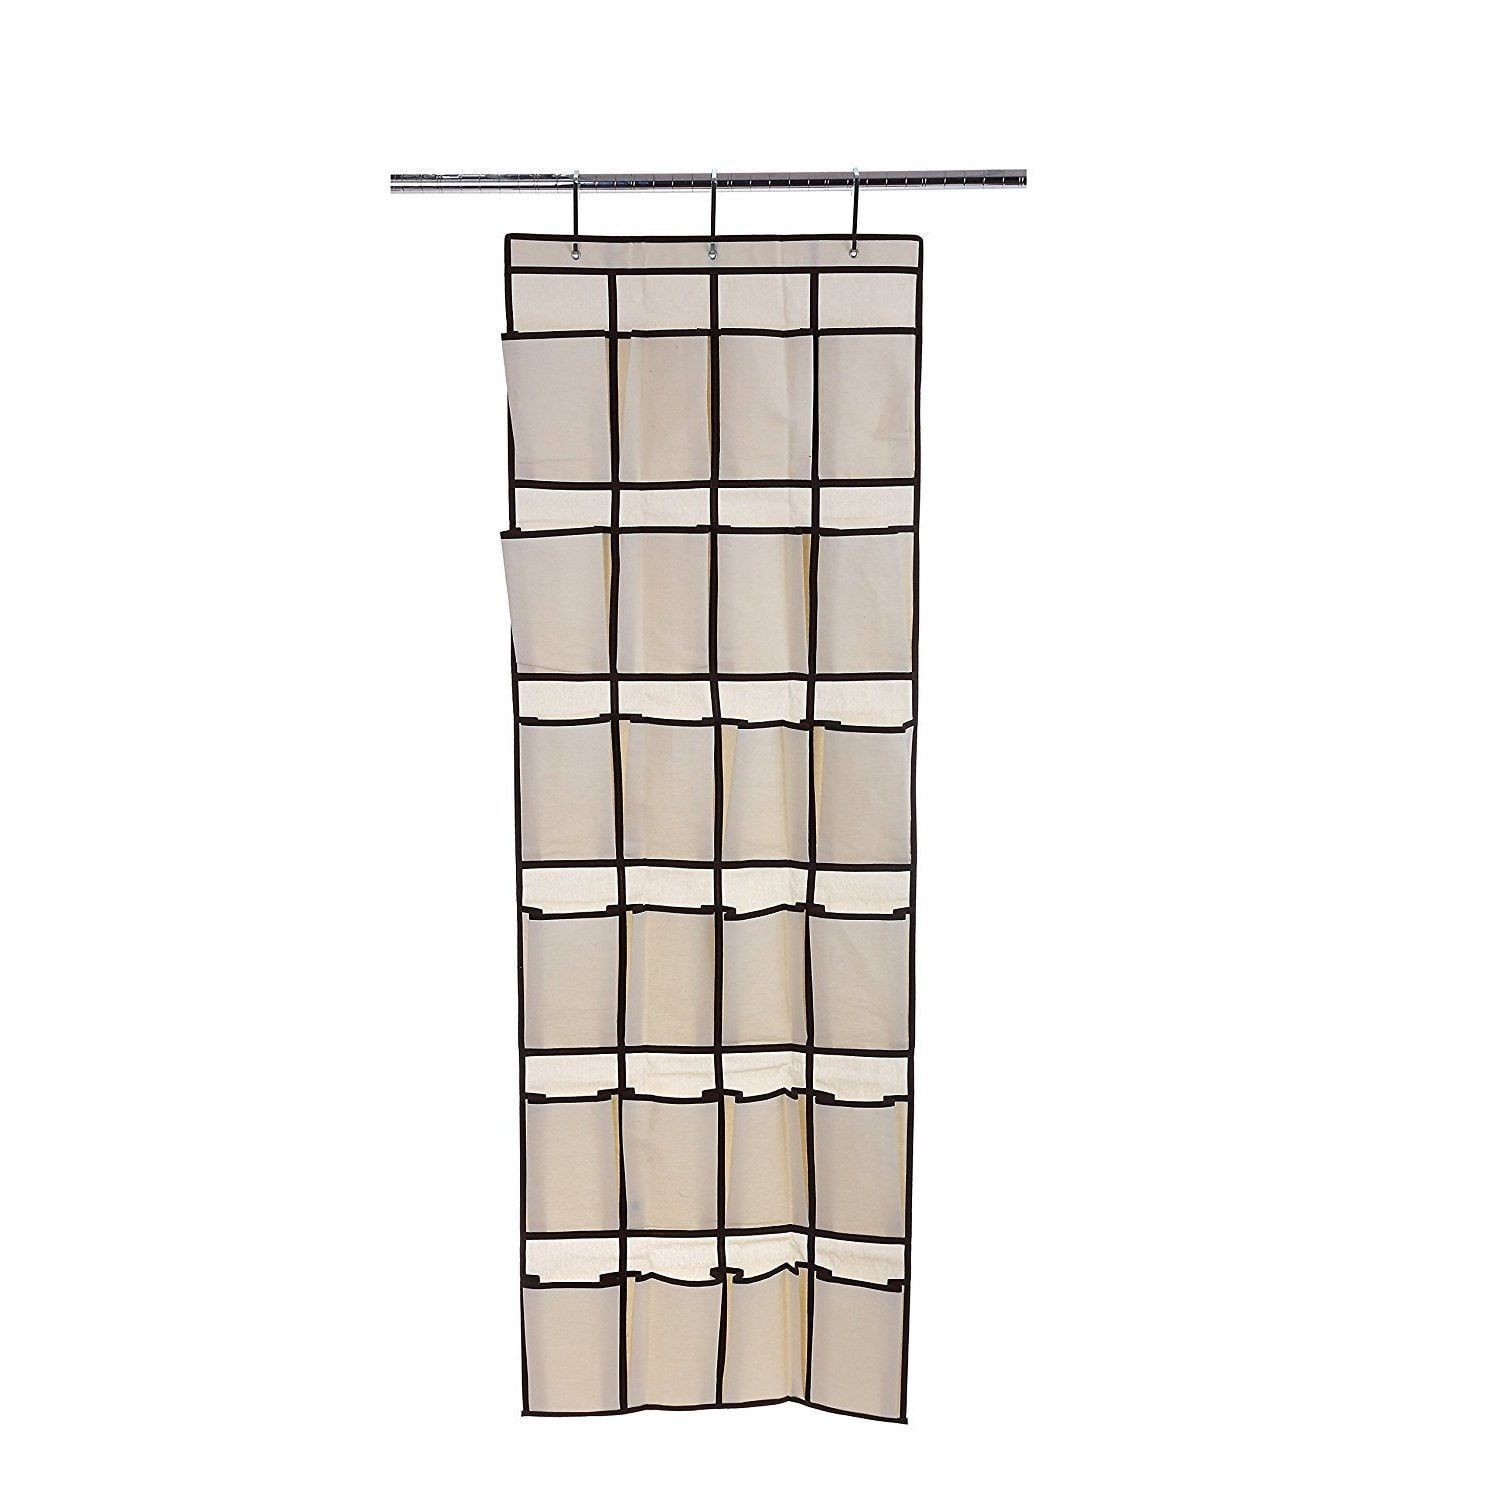 Ybmhome pocket fabric hanging shoe organizer size beige